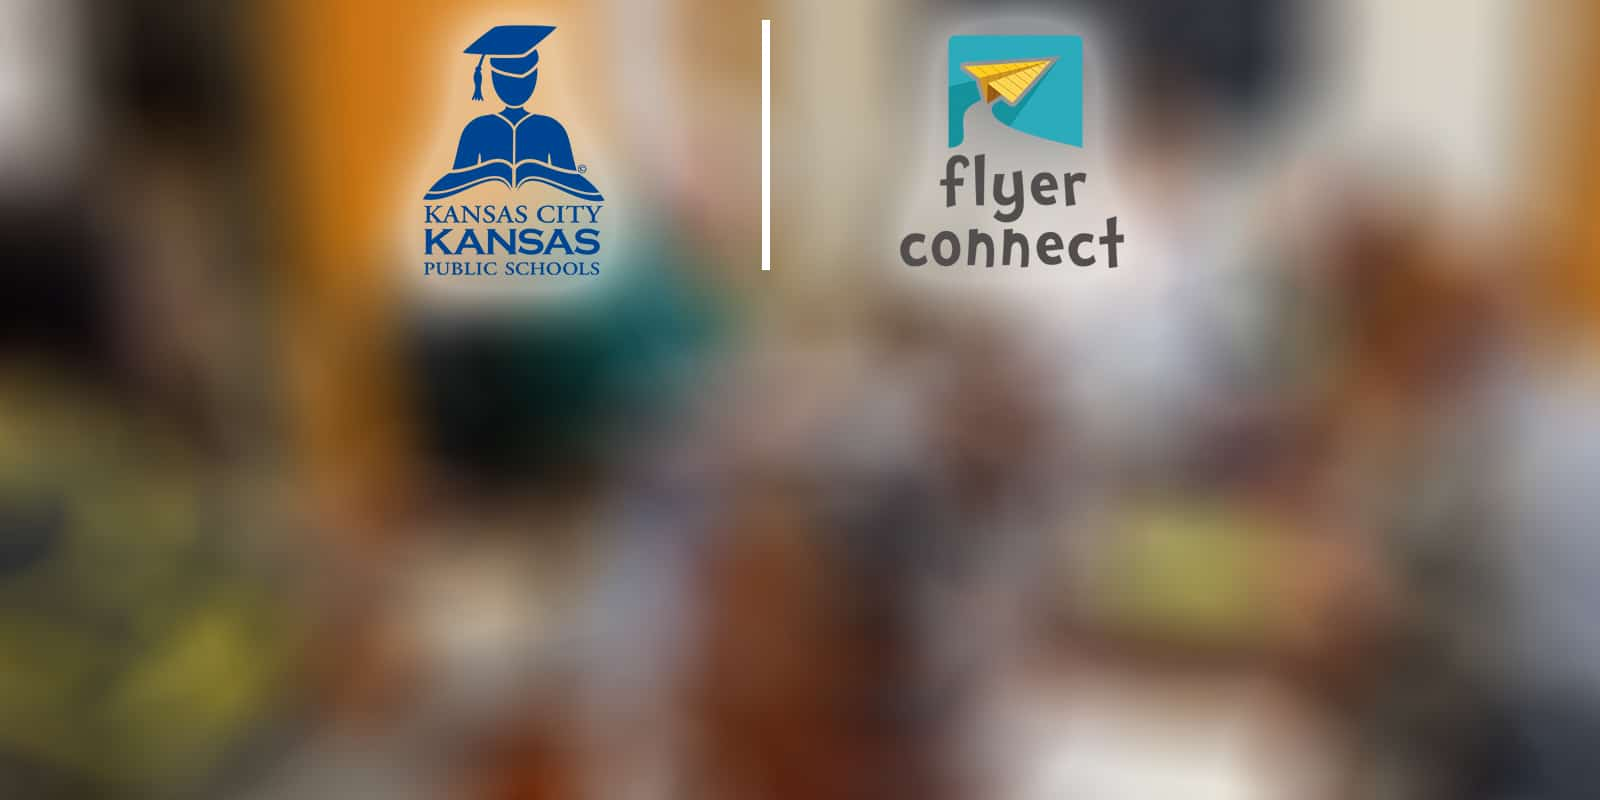 KCKPS and Flyer Connect Logos